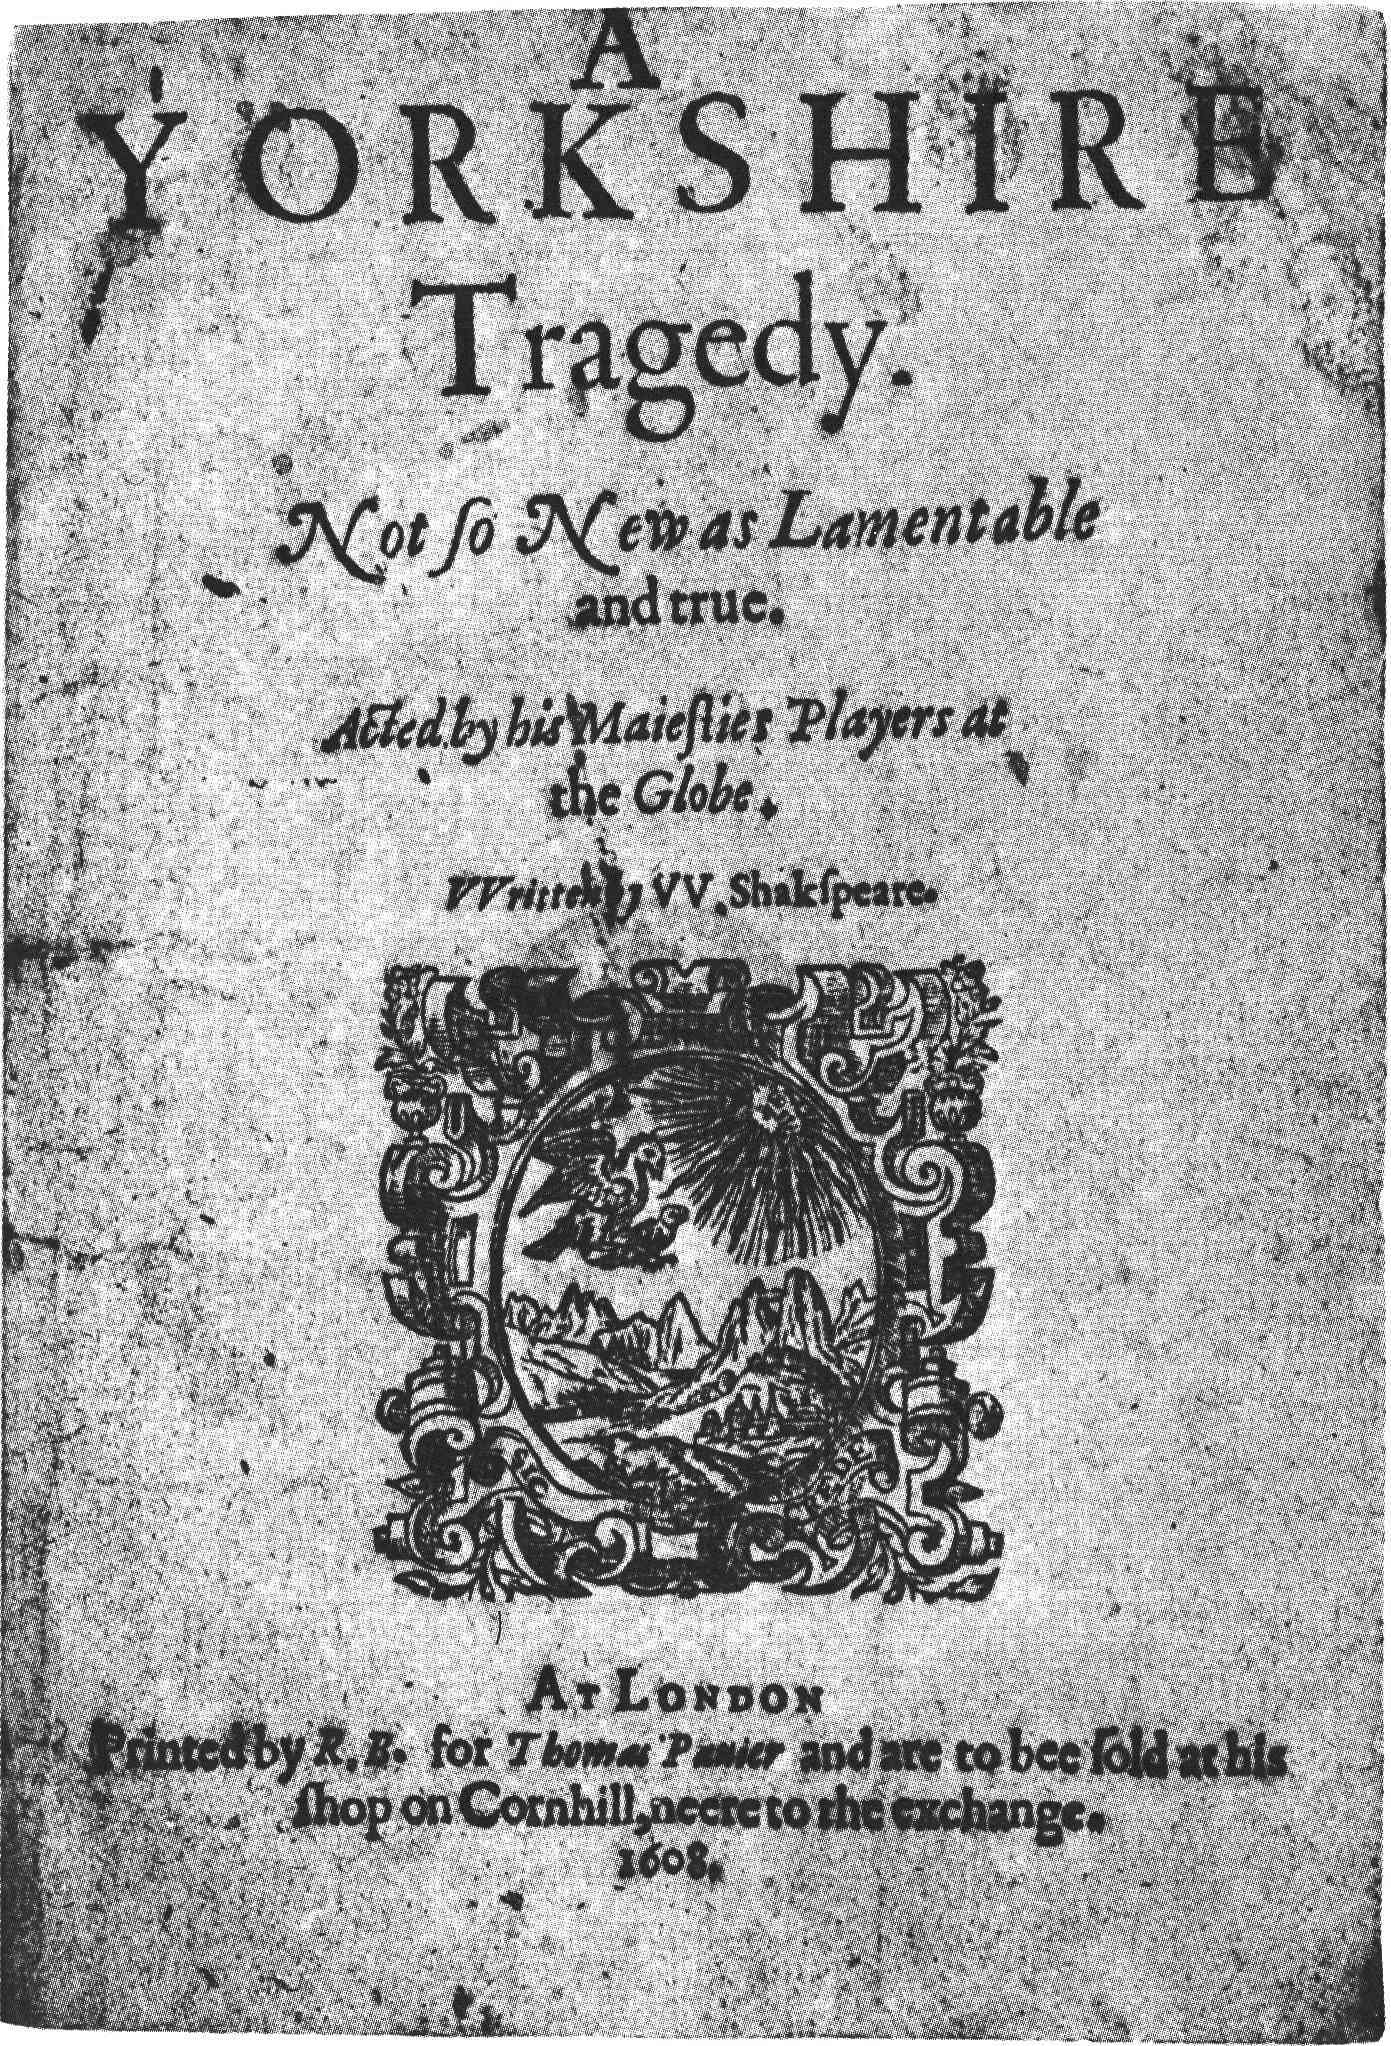 shakespeare tragedy Shakespeare's tragedies often hinge on a fatally flawed character or system, that  is, a flaw ultimately results in death or destruction scholars divide the plays into.